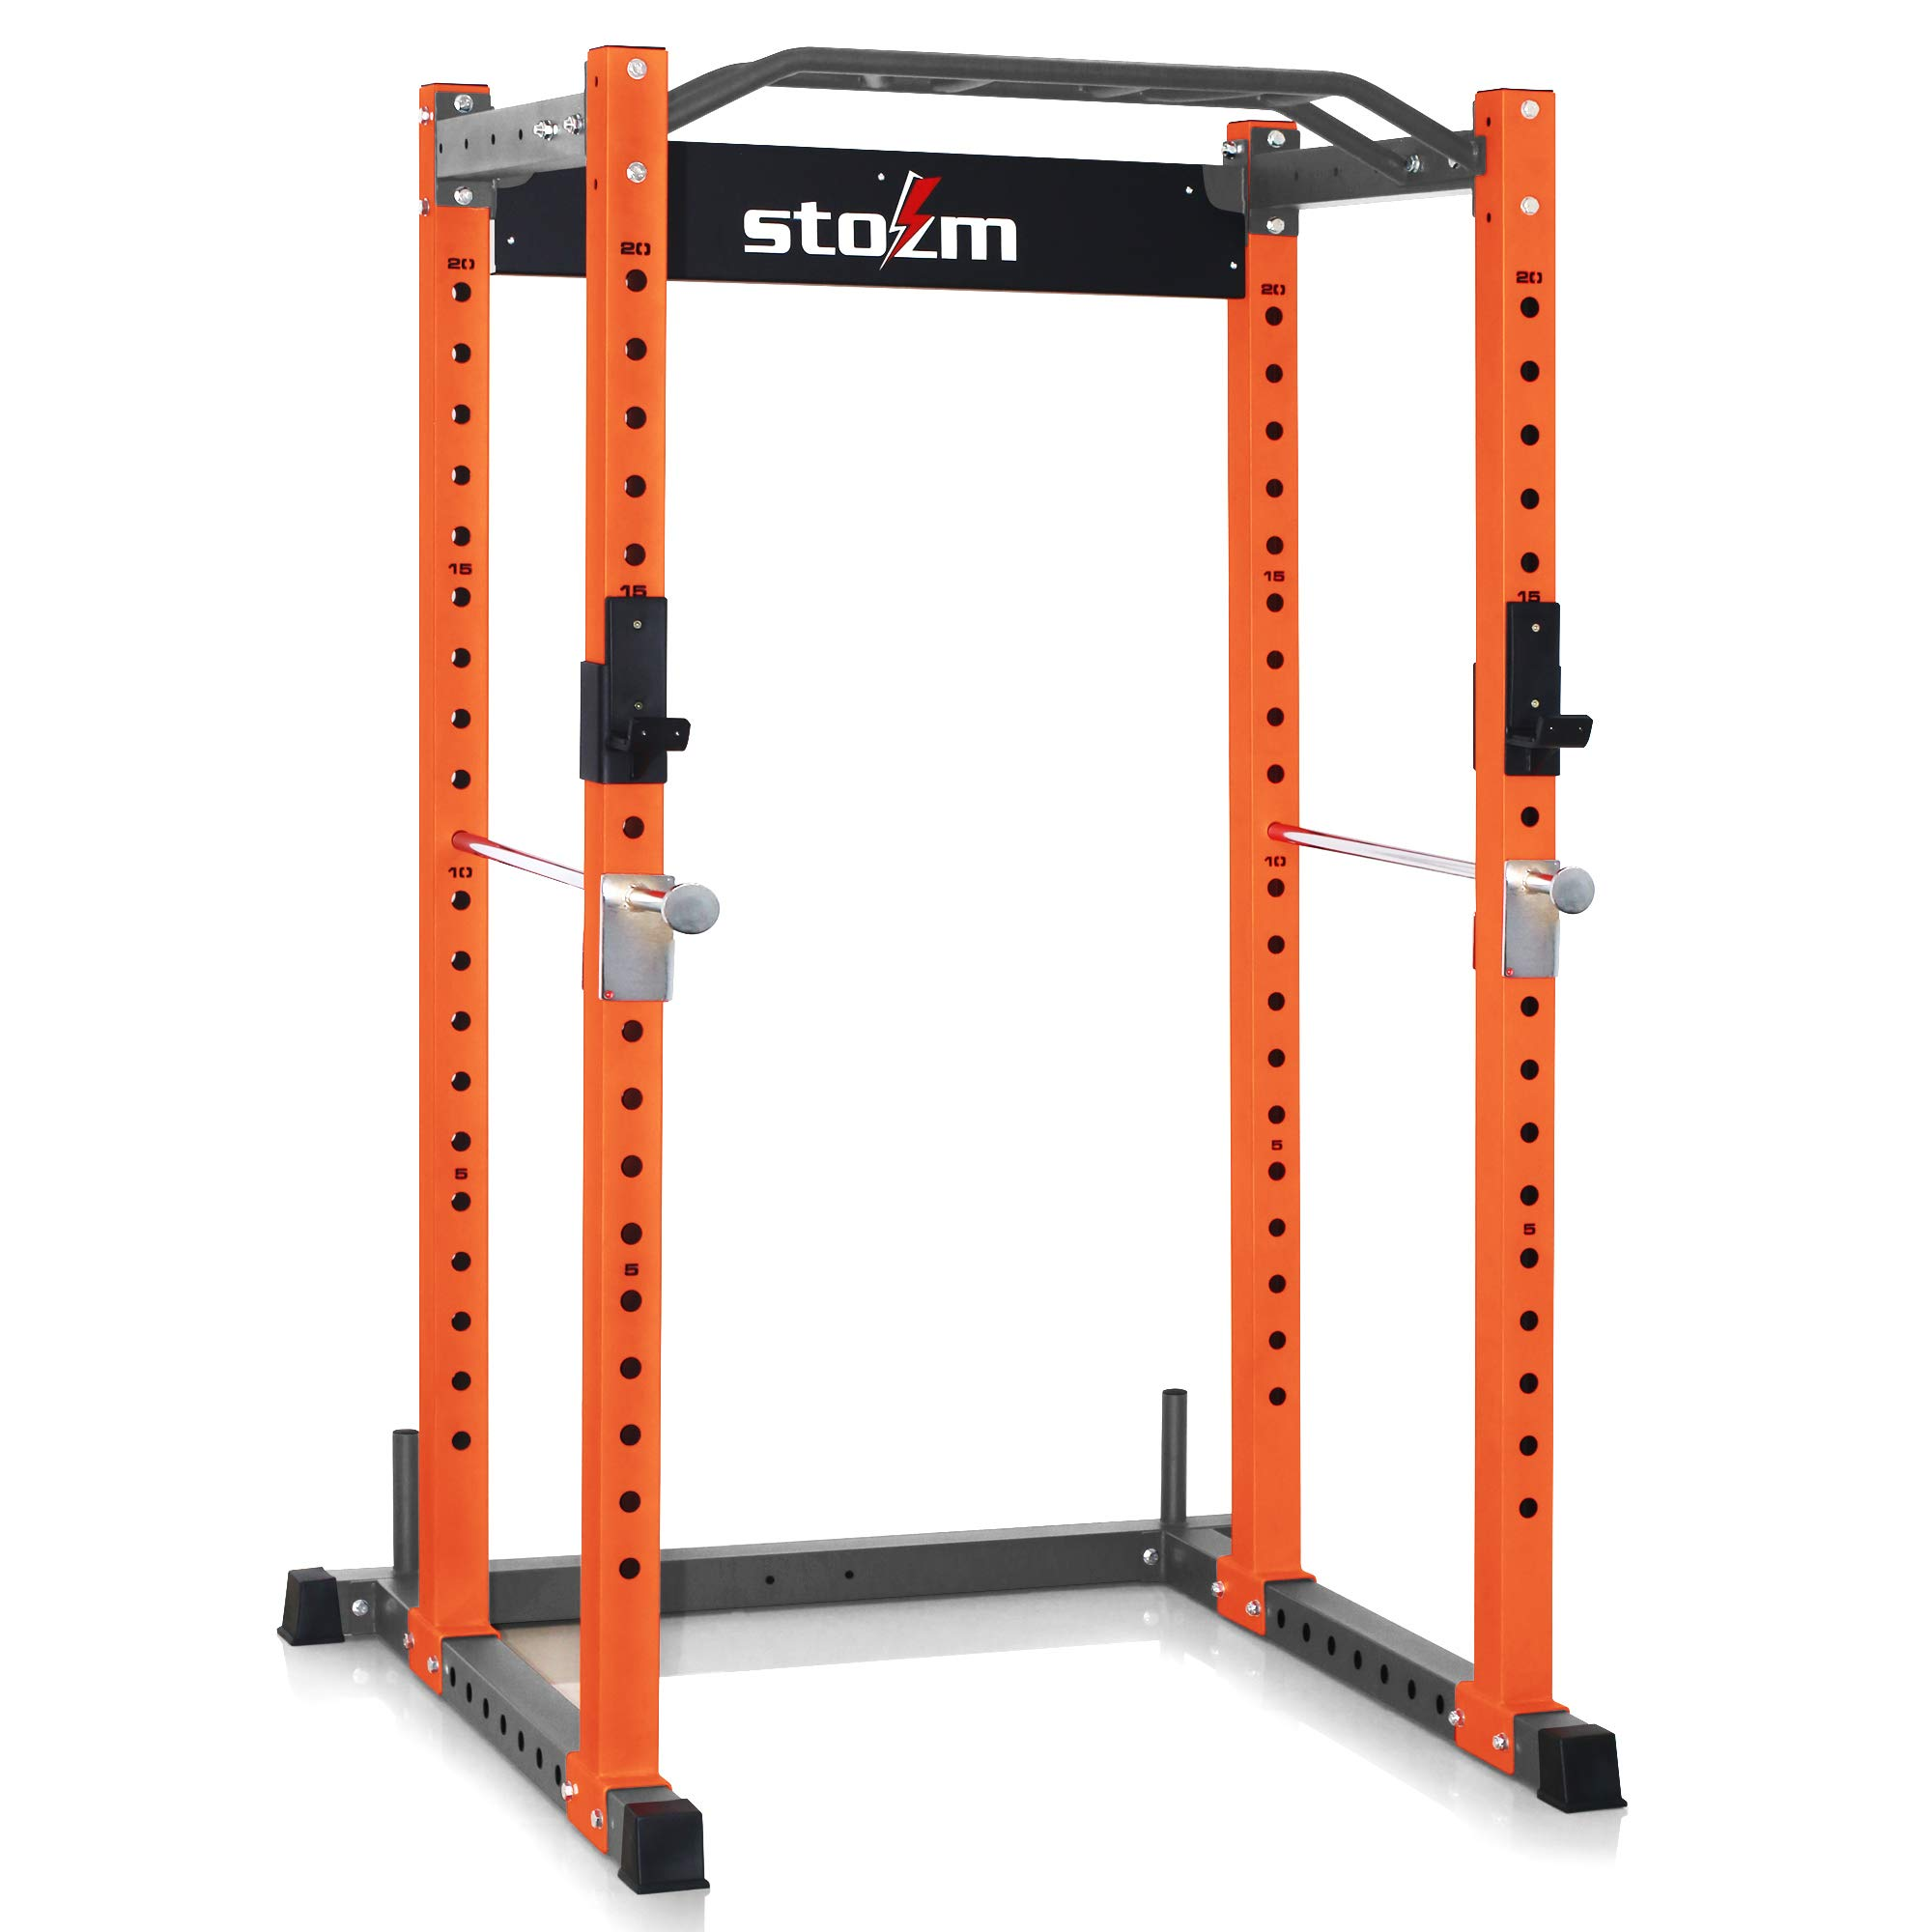 stozm 3 x3 multi functional squatting rack power rack supports 1100lbs orange grey package includes a pull up bar j hooks safety bar catches